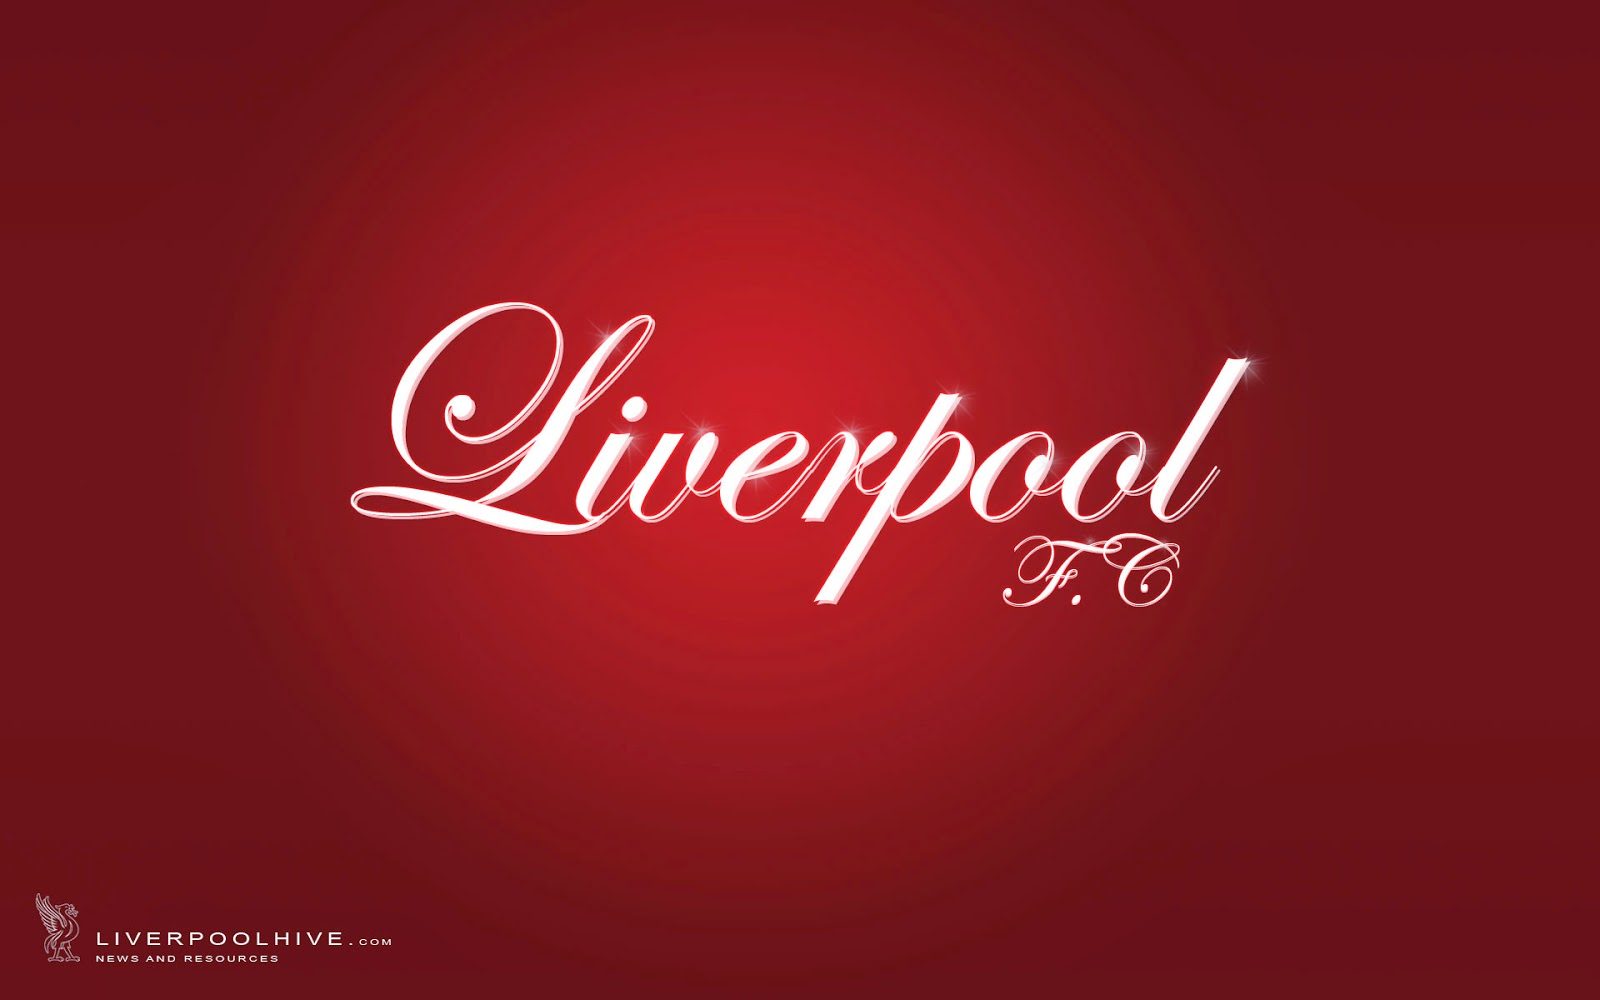 liverpool football club bedroom wallpaper